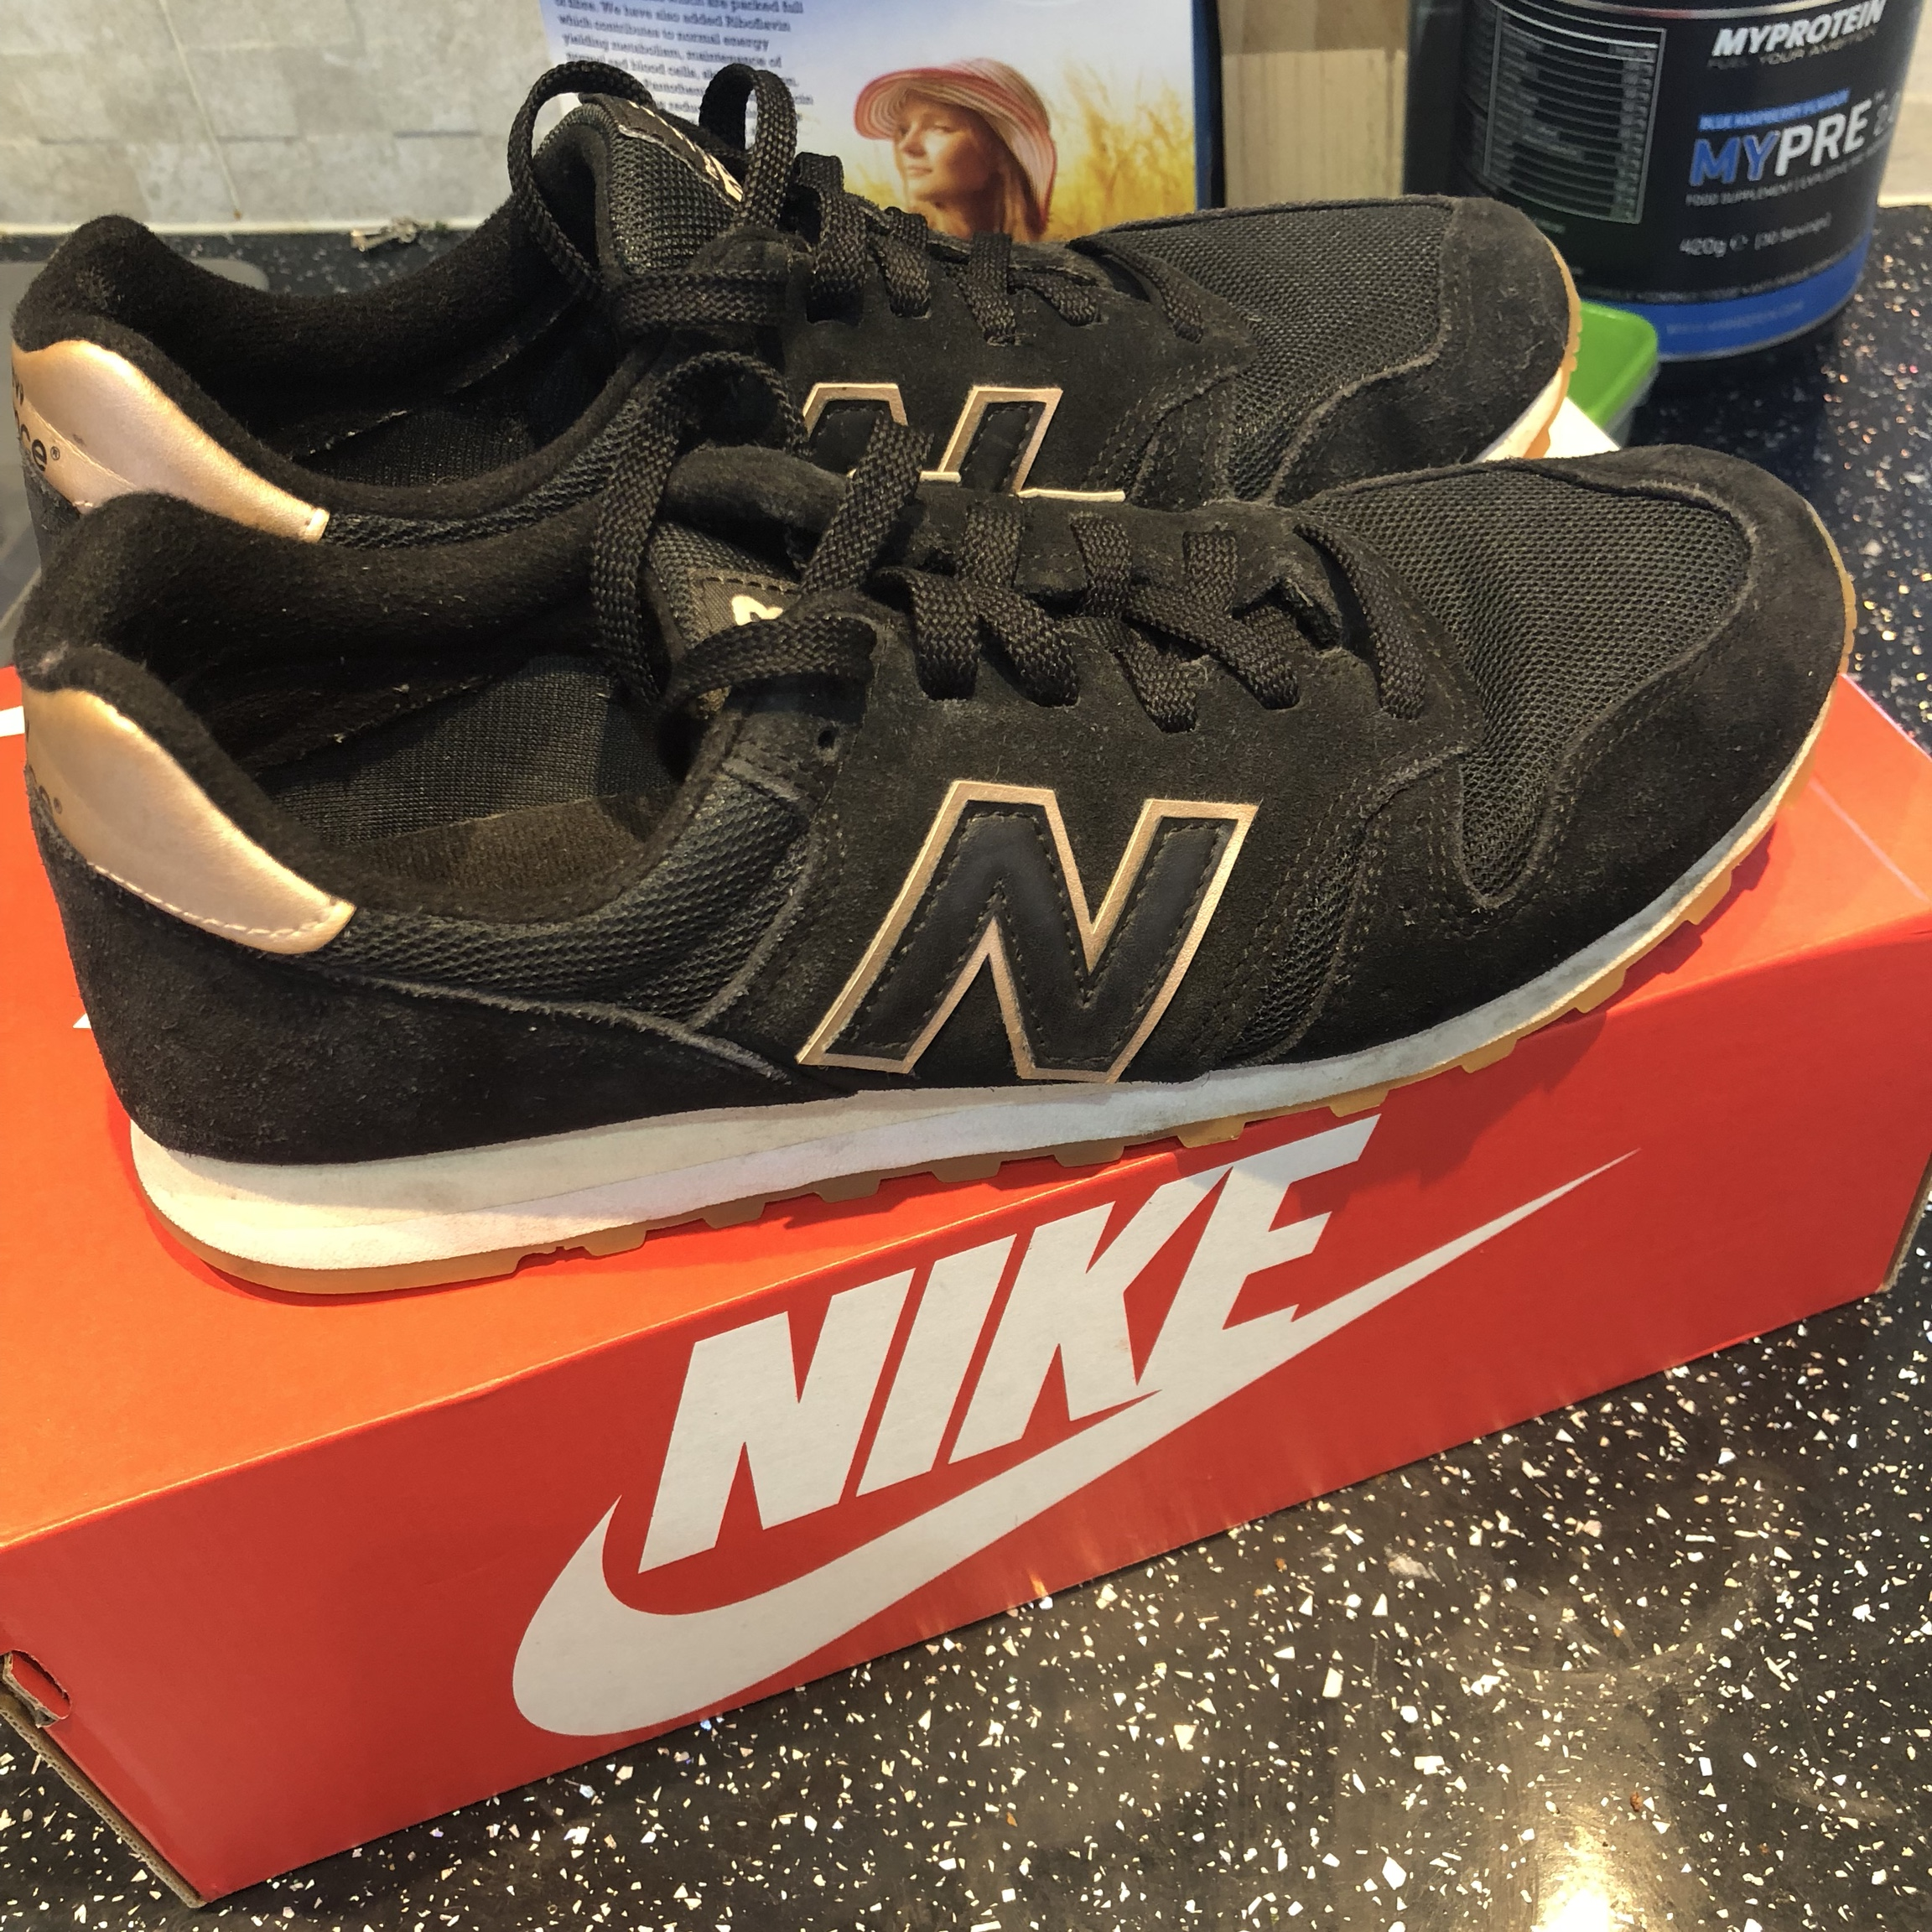 New balance black rose gold 574 trainers Suede and Depop